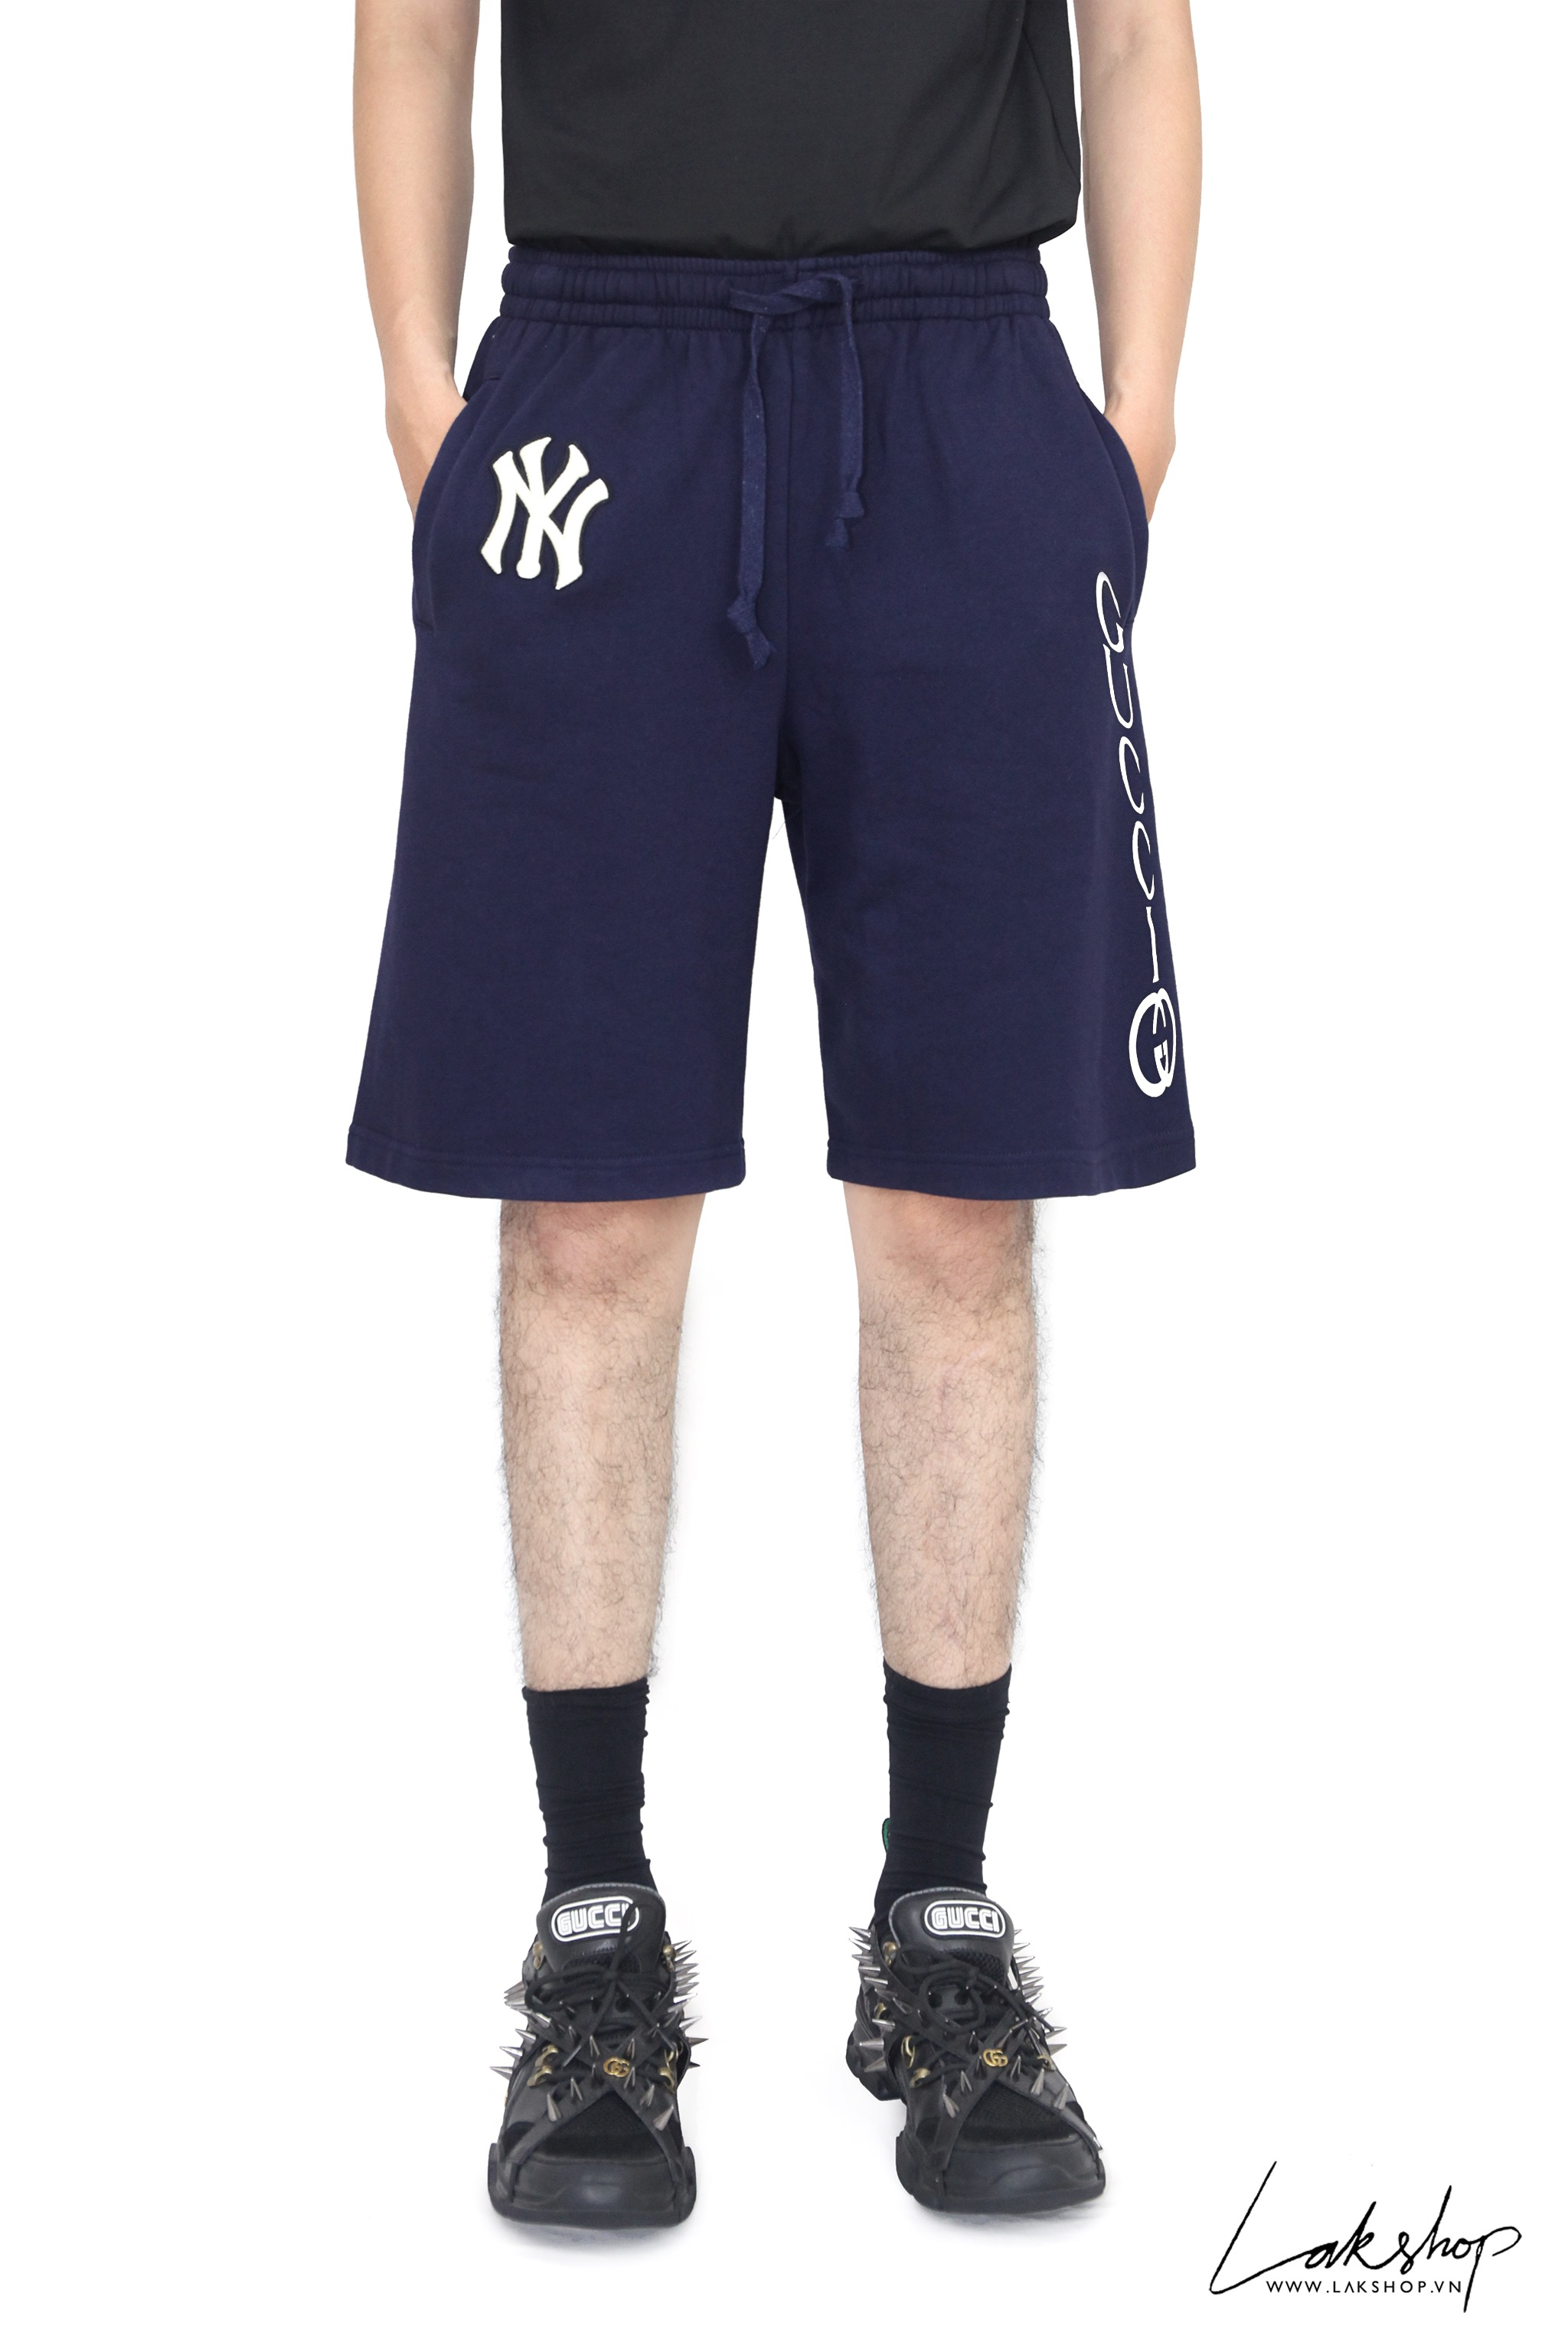 Gucci Navy Ny Yankees Edition Patch Sweat Shorts (Bản đẹp 1:1 form âu)